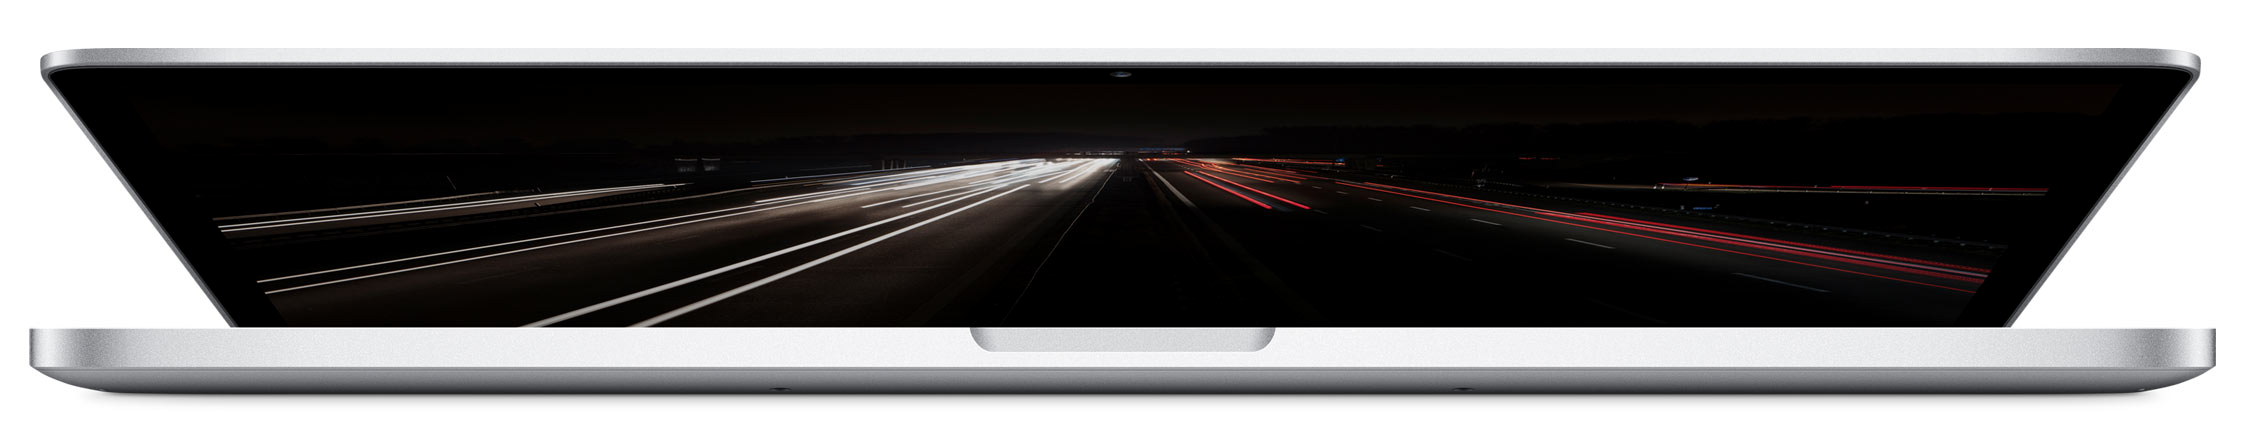 retina-macbook-pro-force-touch